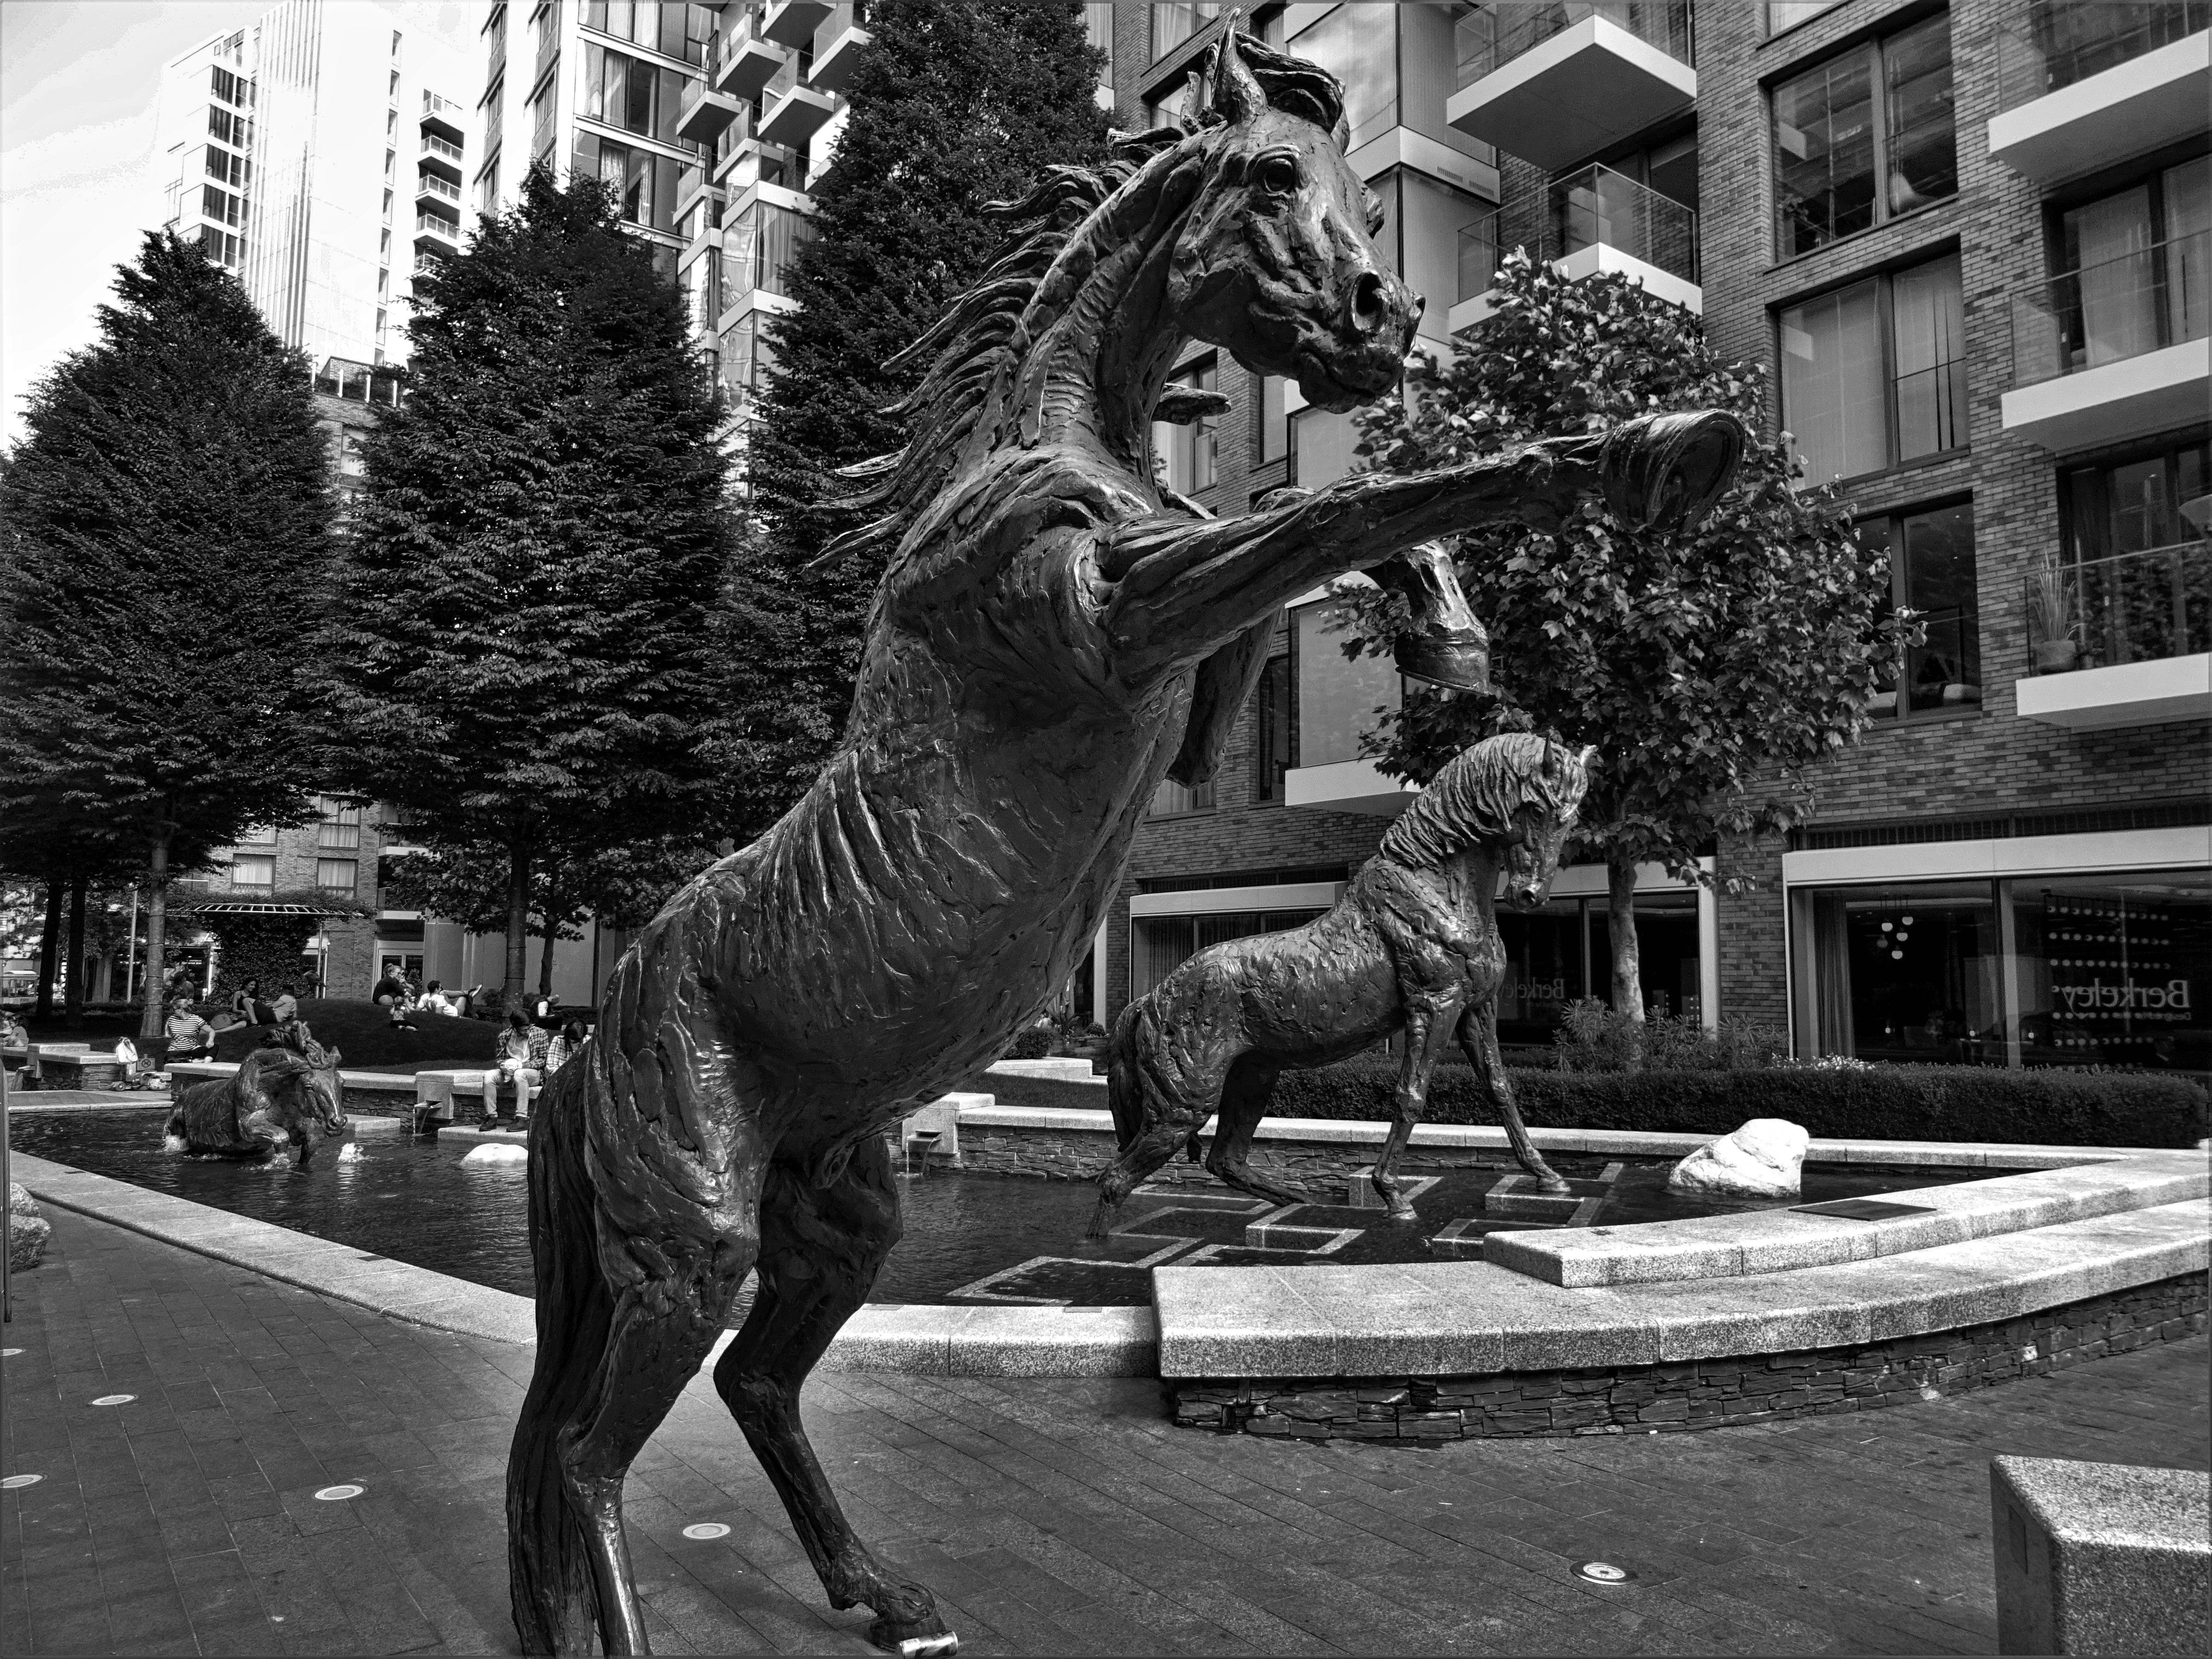 Grayscale Photo of Horse Staue